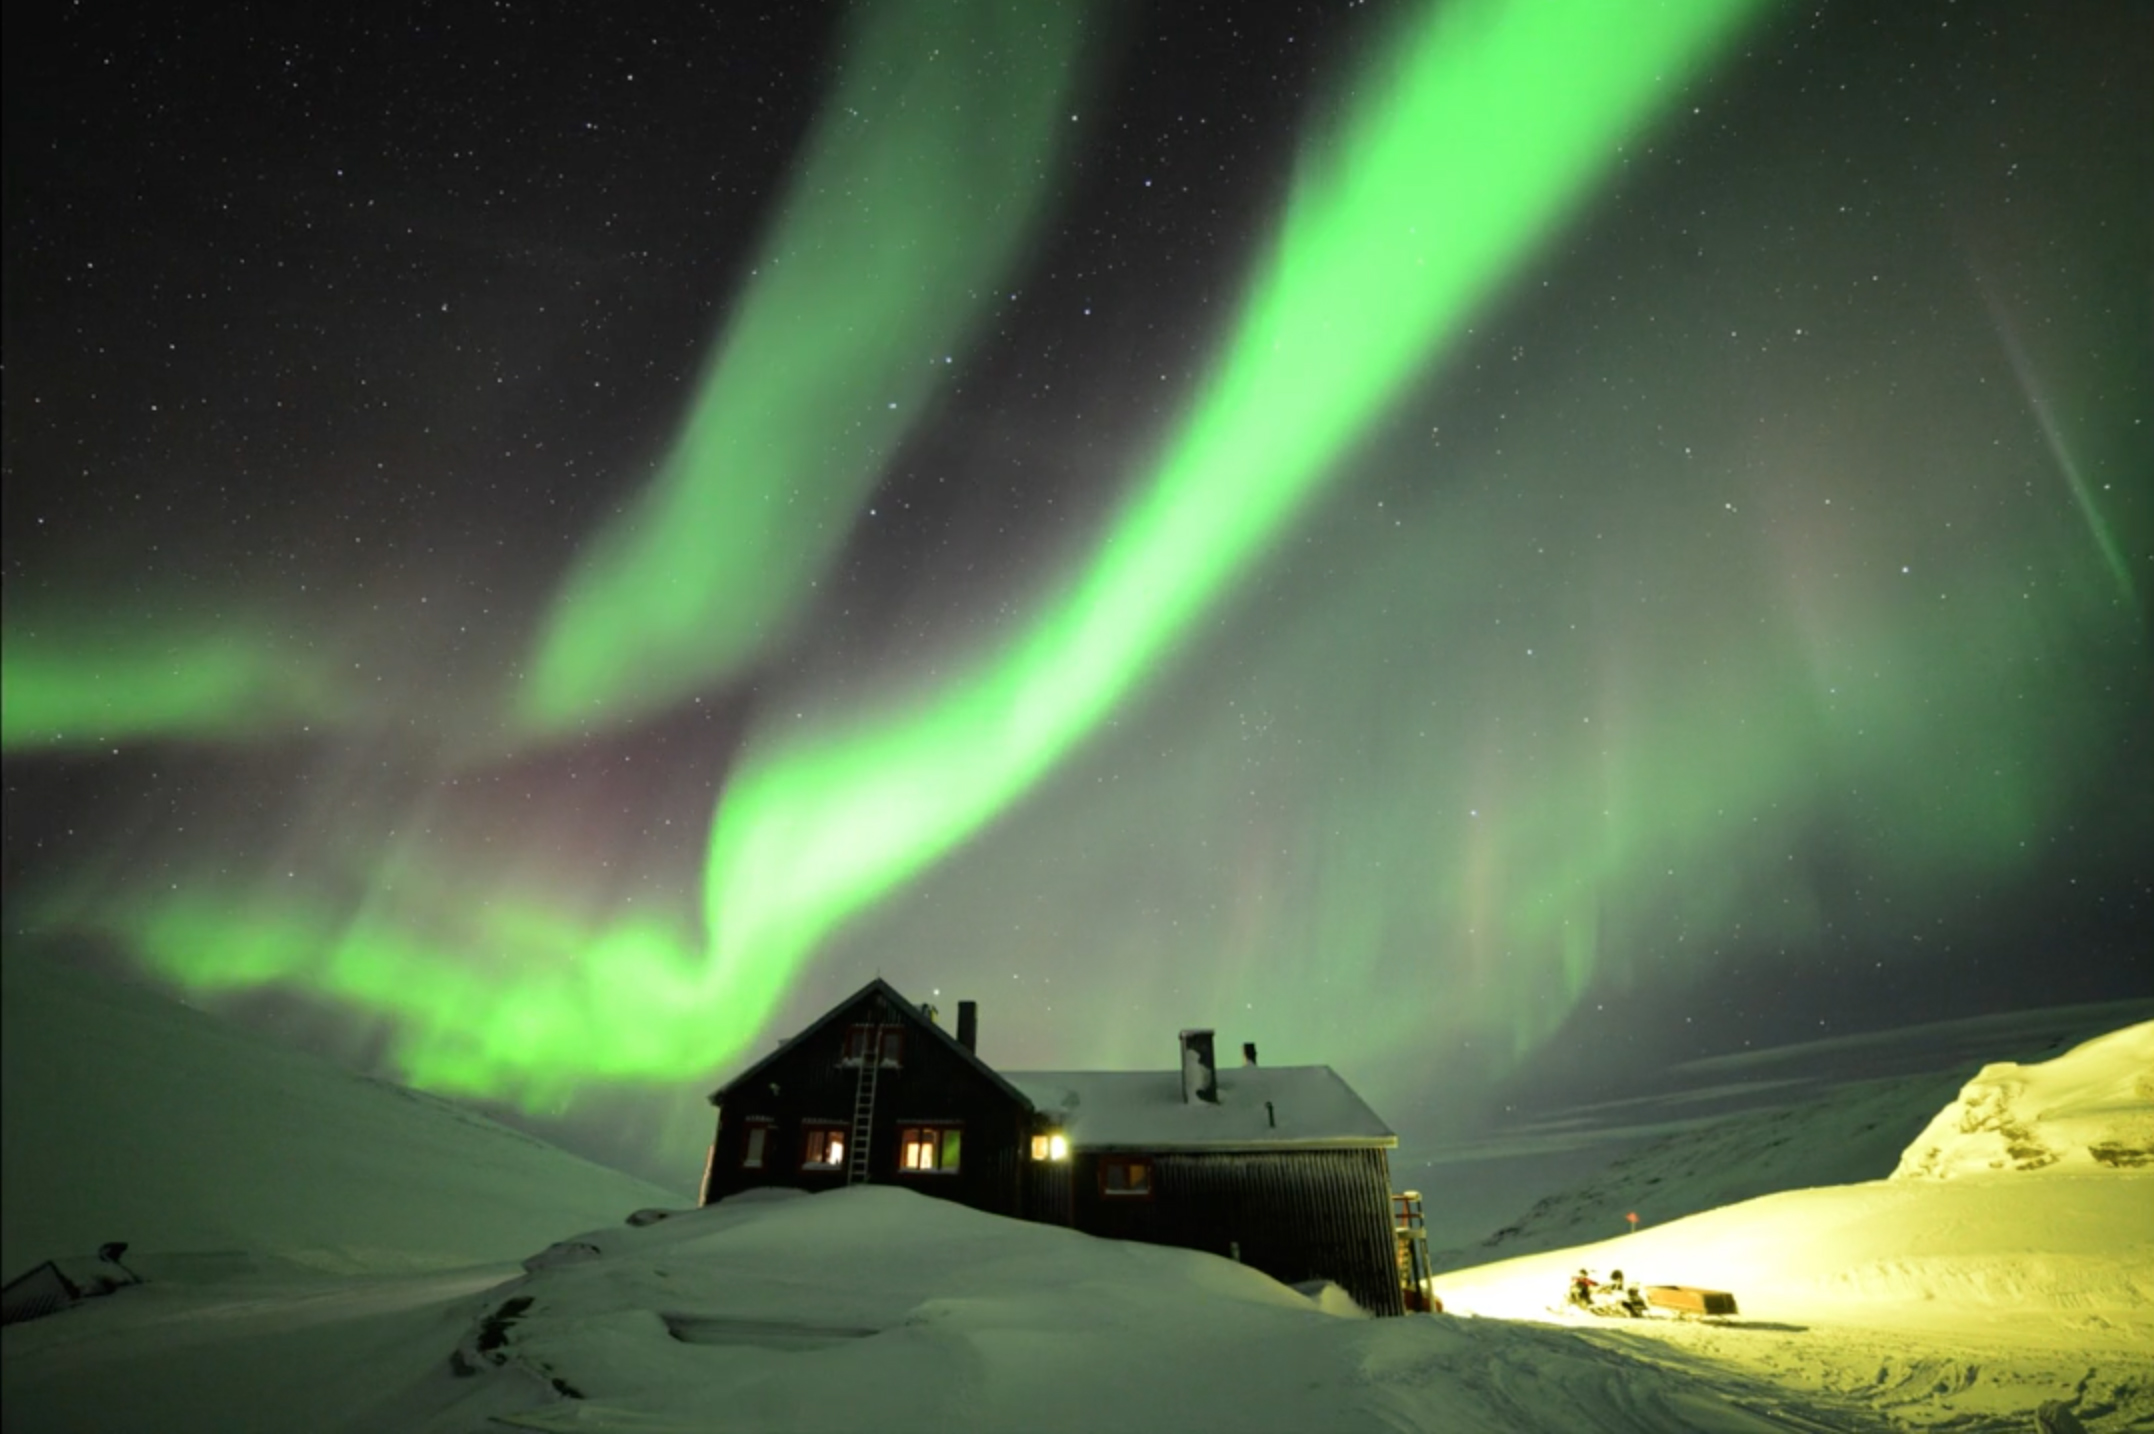 Auroras Glow Over Hotel in Swedish Lapland by Chad Blakley